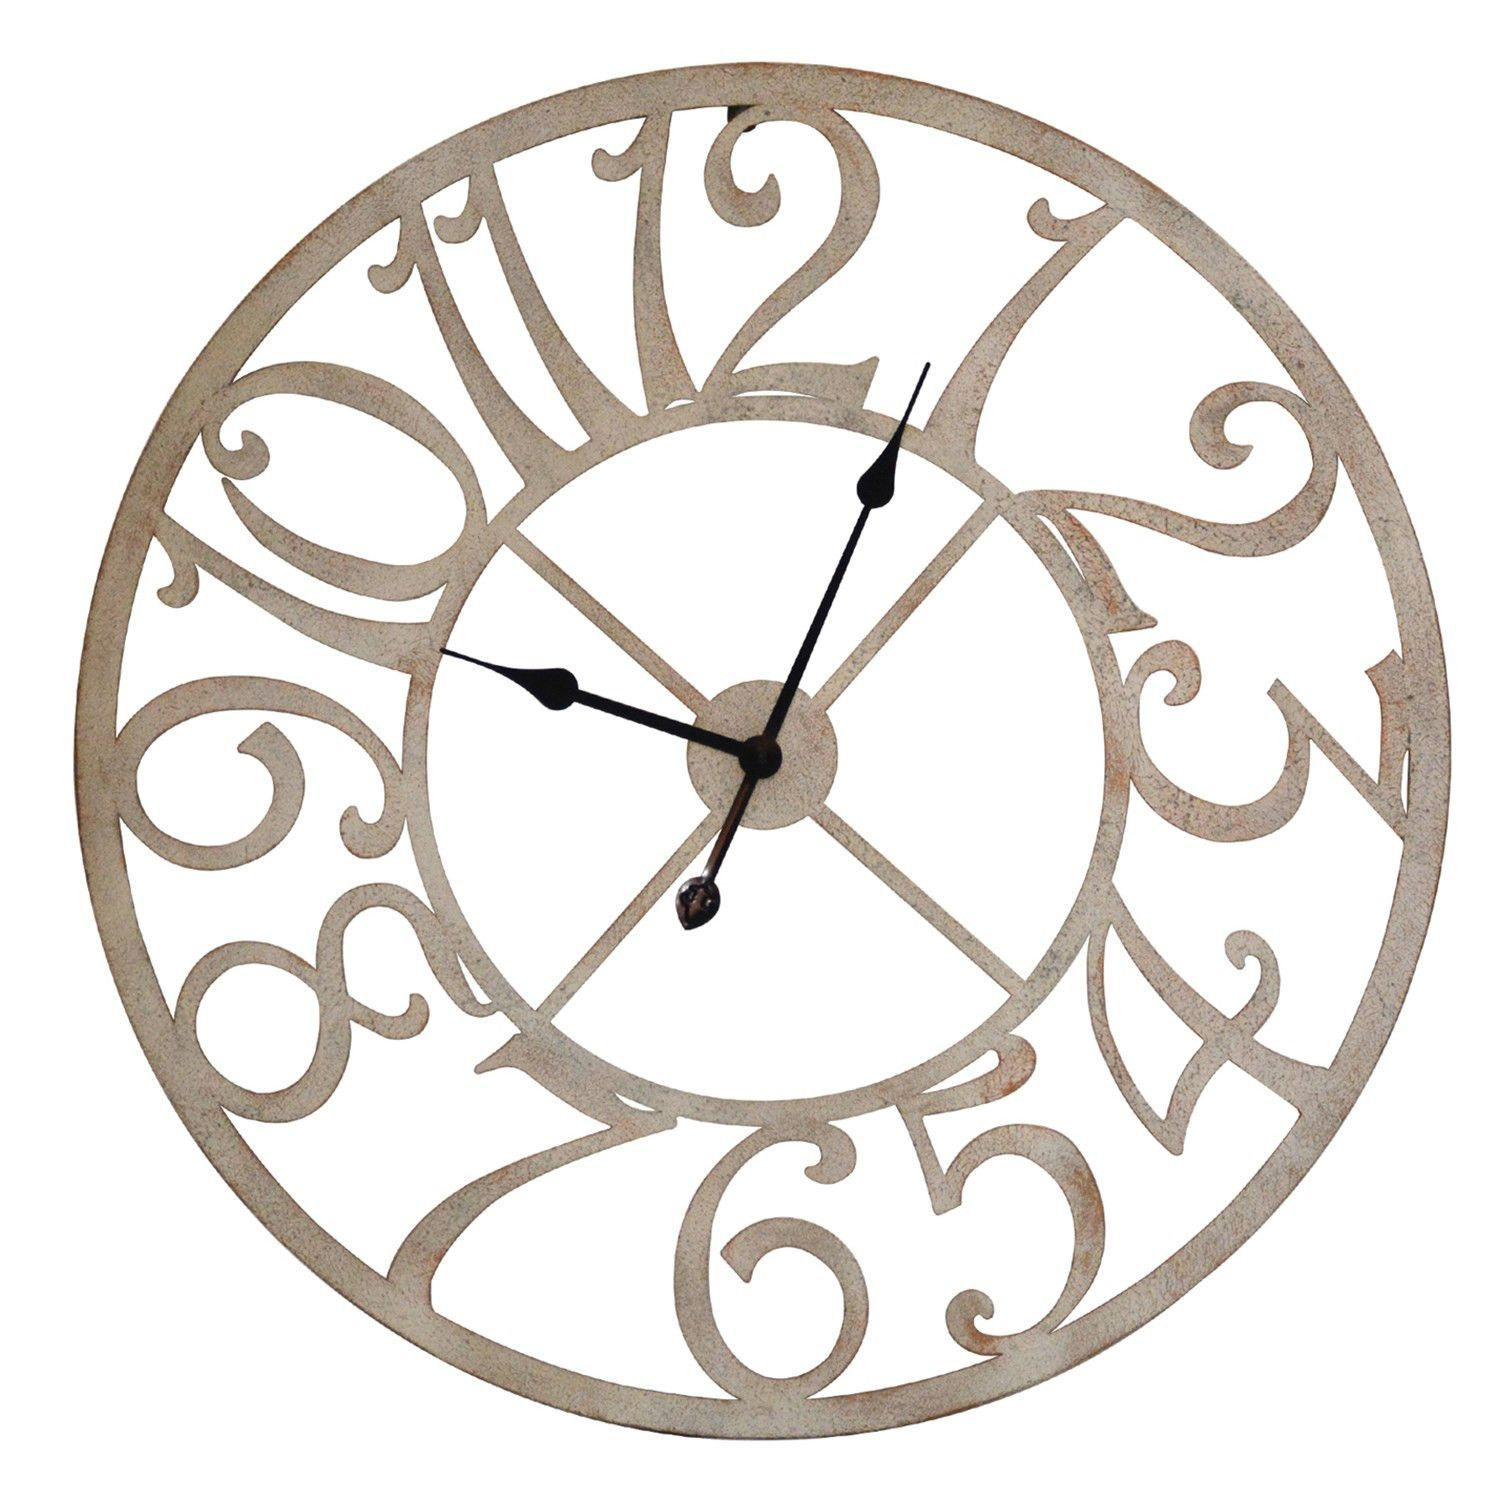 29*15*29 Wall Clock, 1 Pc Ups 22